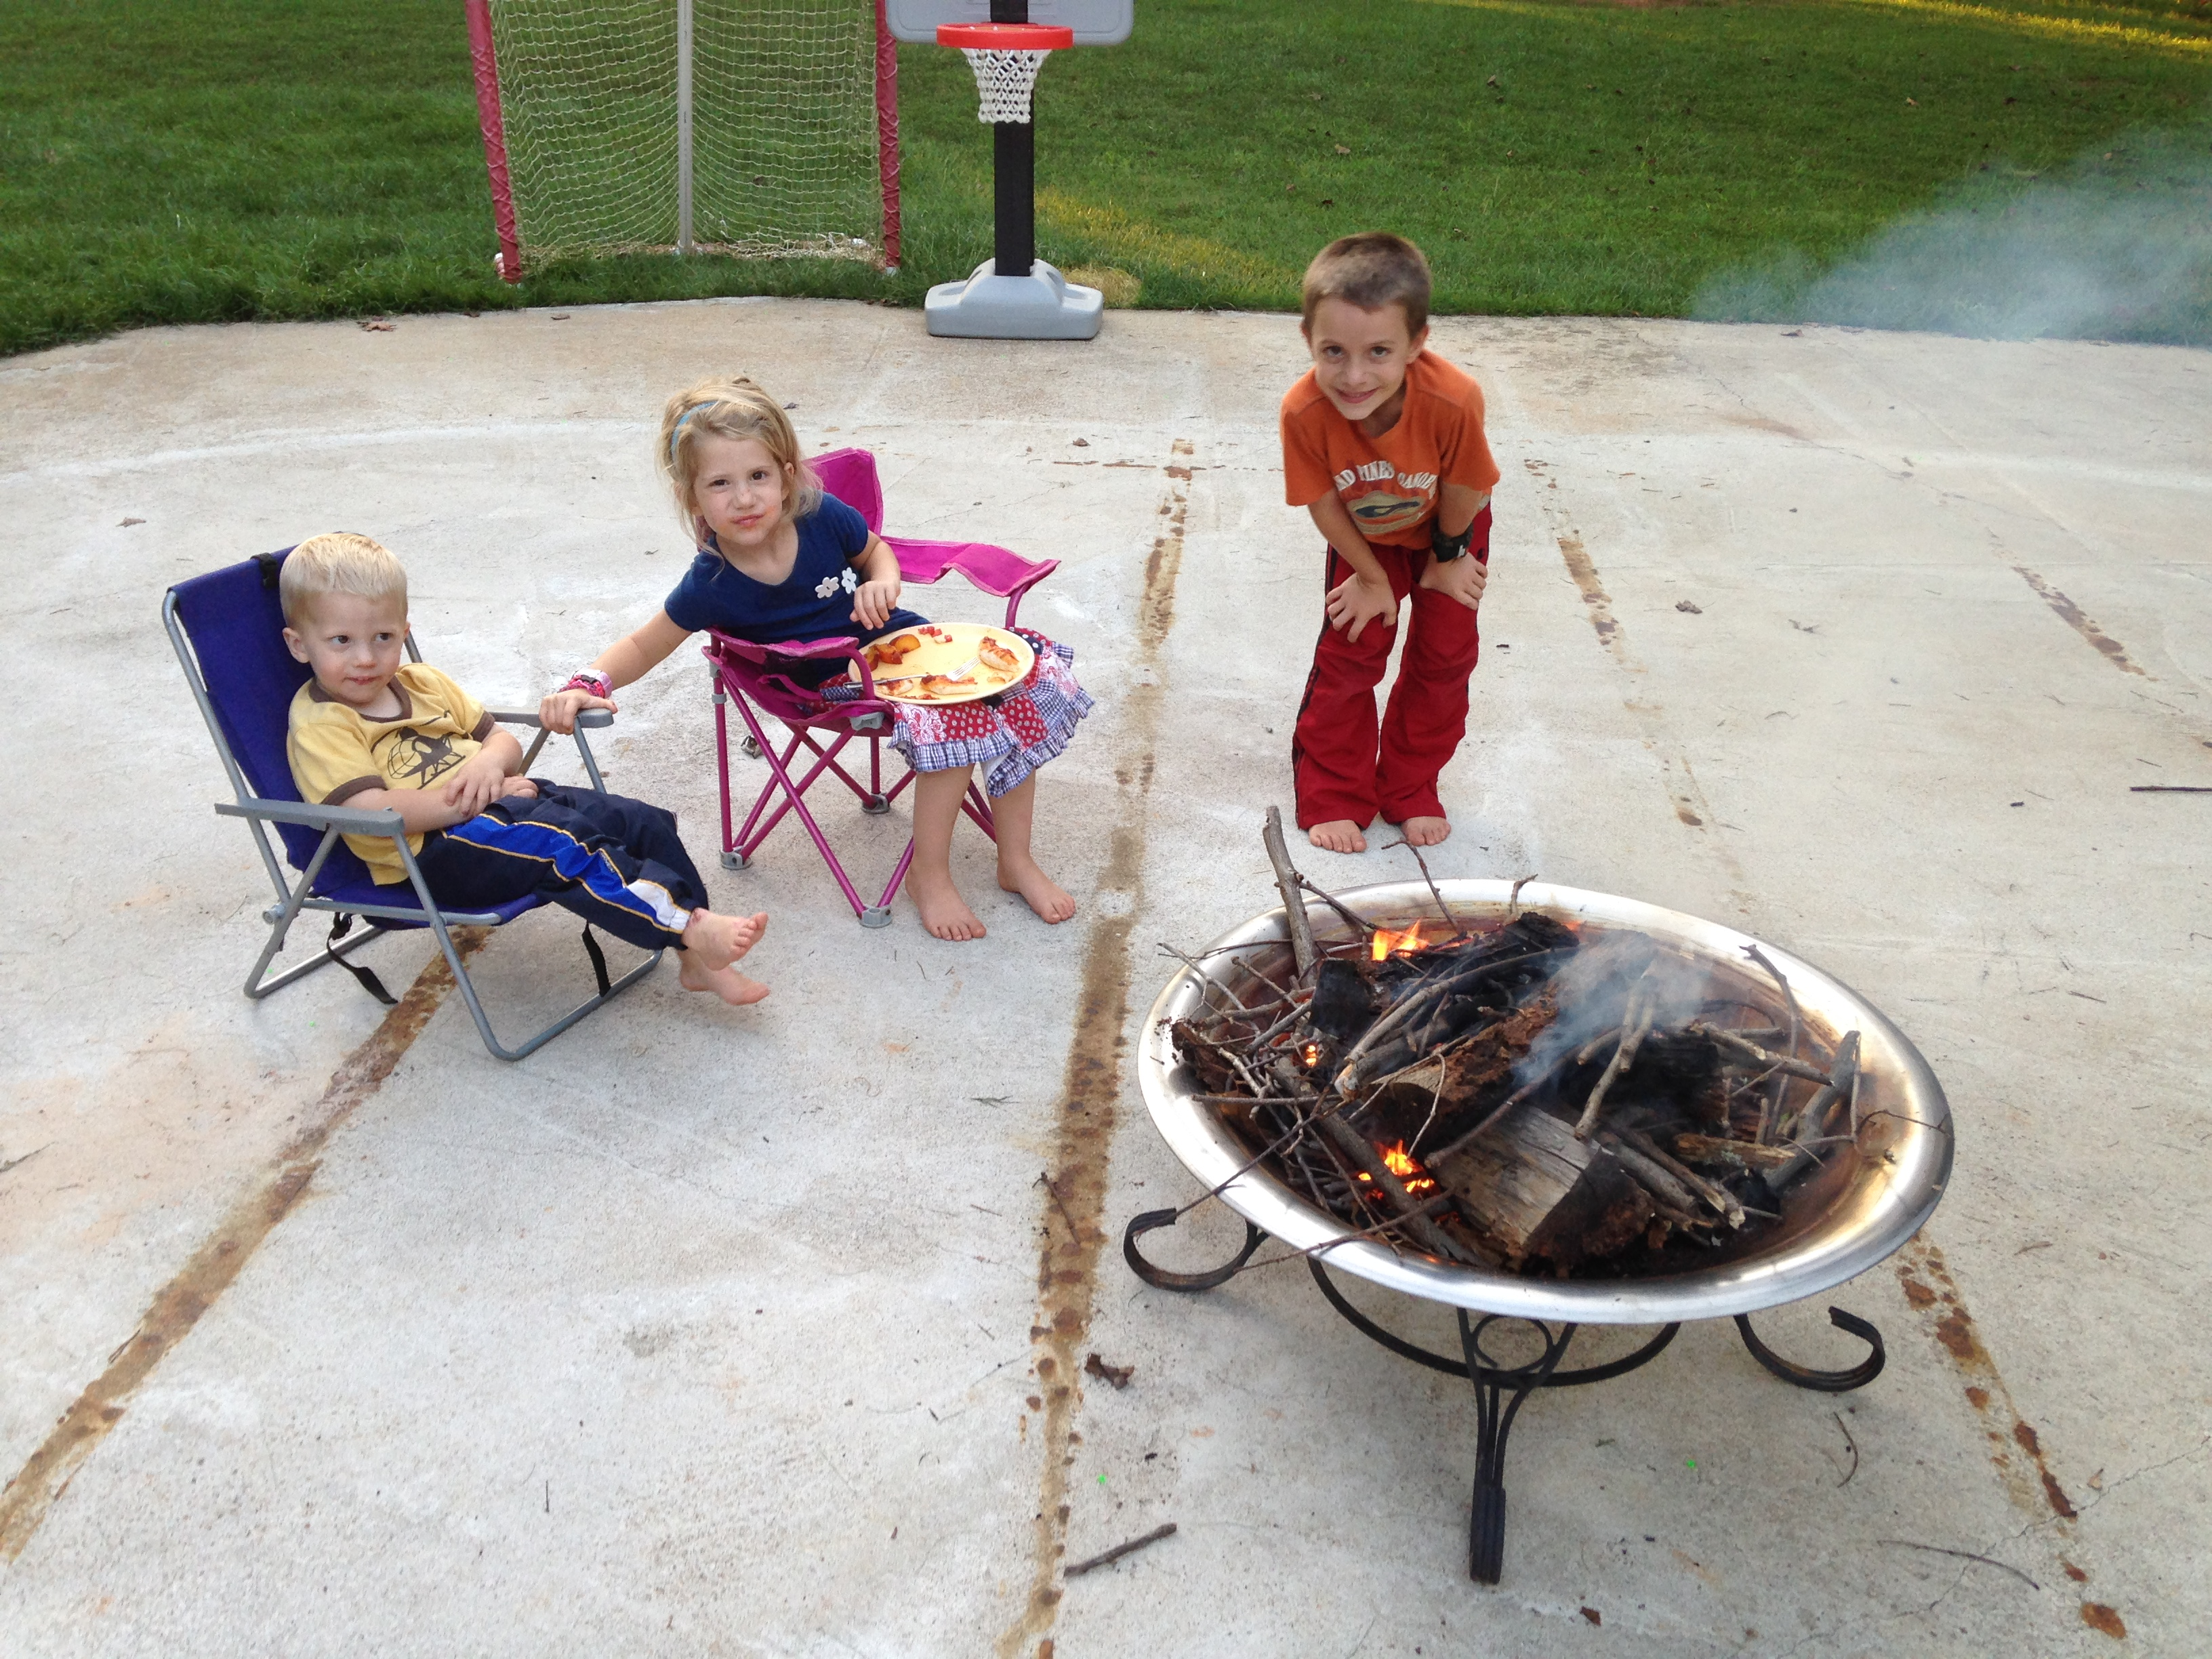 Tonight Chester & the kids roasted marshmallows while I worked on my consignment stuff.